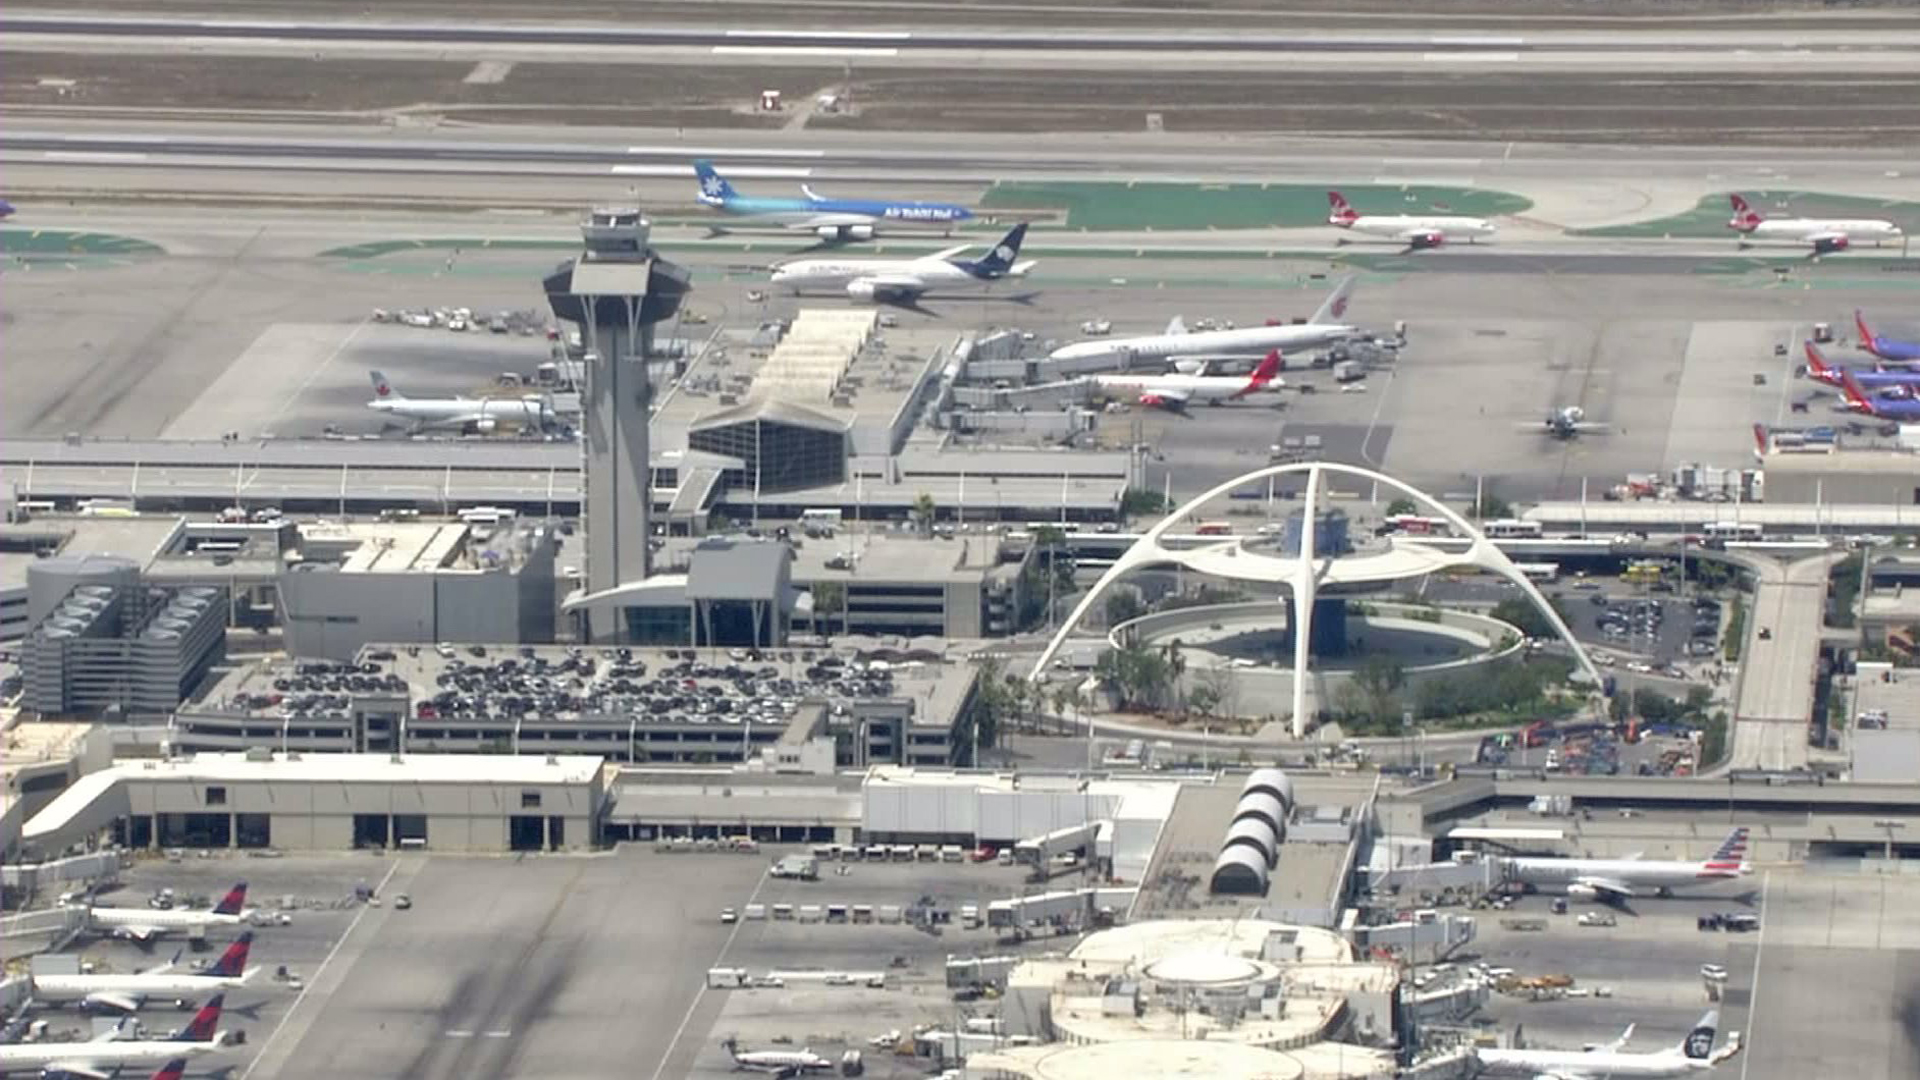 Los Angeles International Airport is shown in this file photo. (Credit: KTLA)